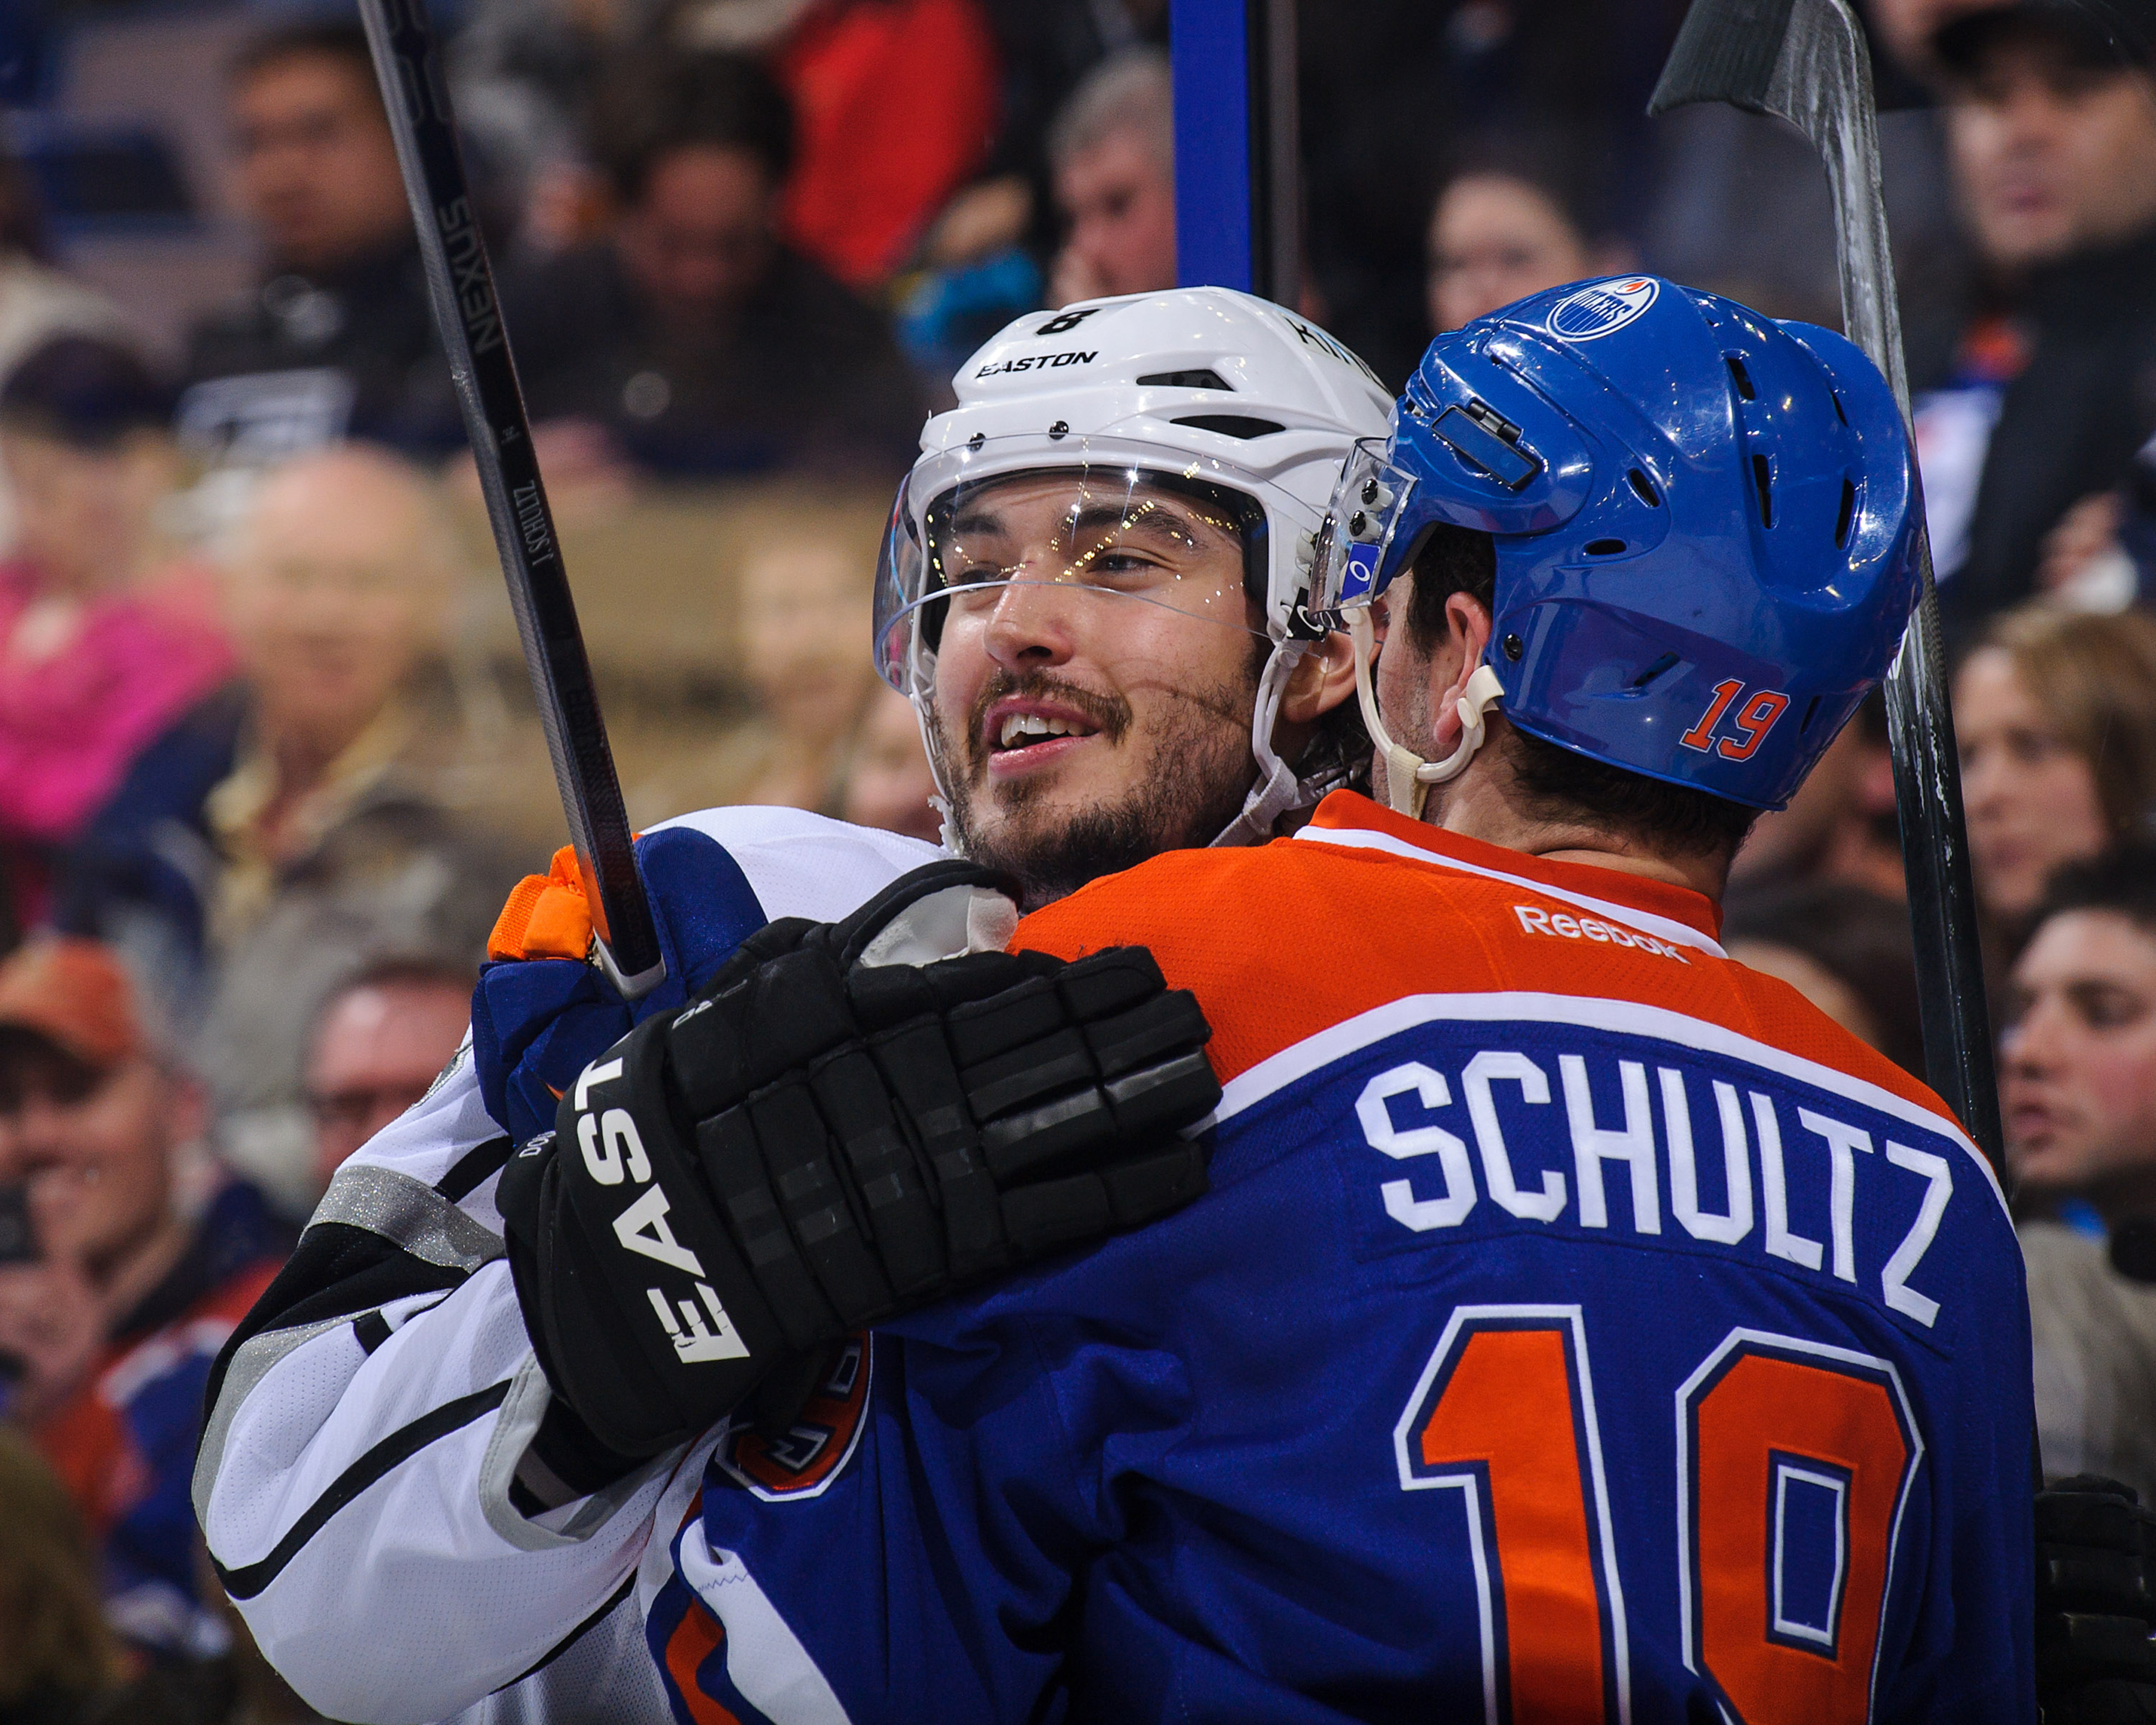 Drew Doughty, being the loving and caring soul that he is, attempts to make Justin Schultz feel better about being on the Oilers with a nice hug. Awwww.